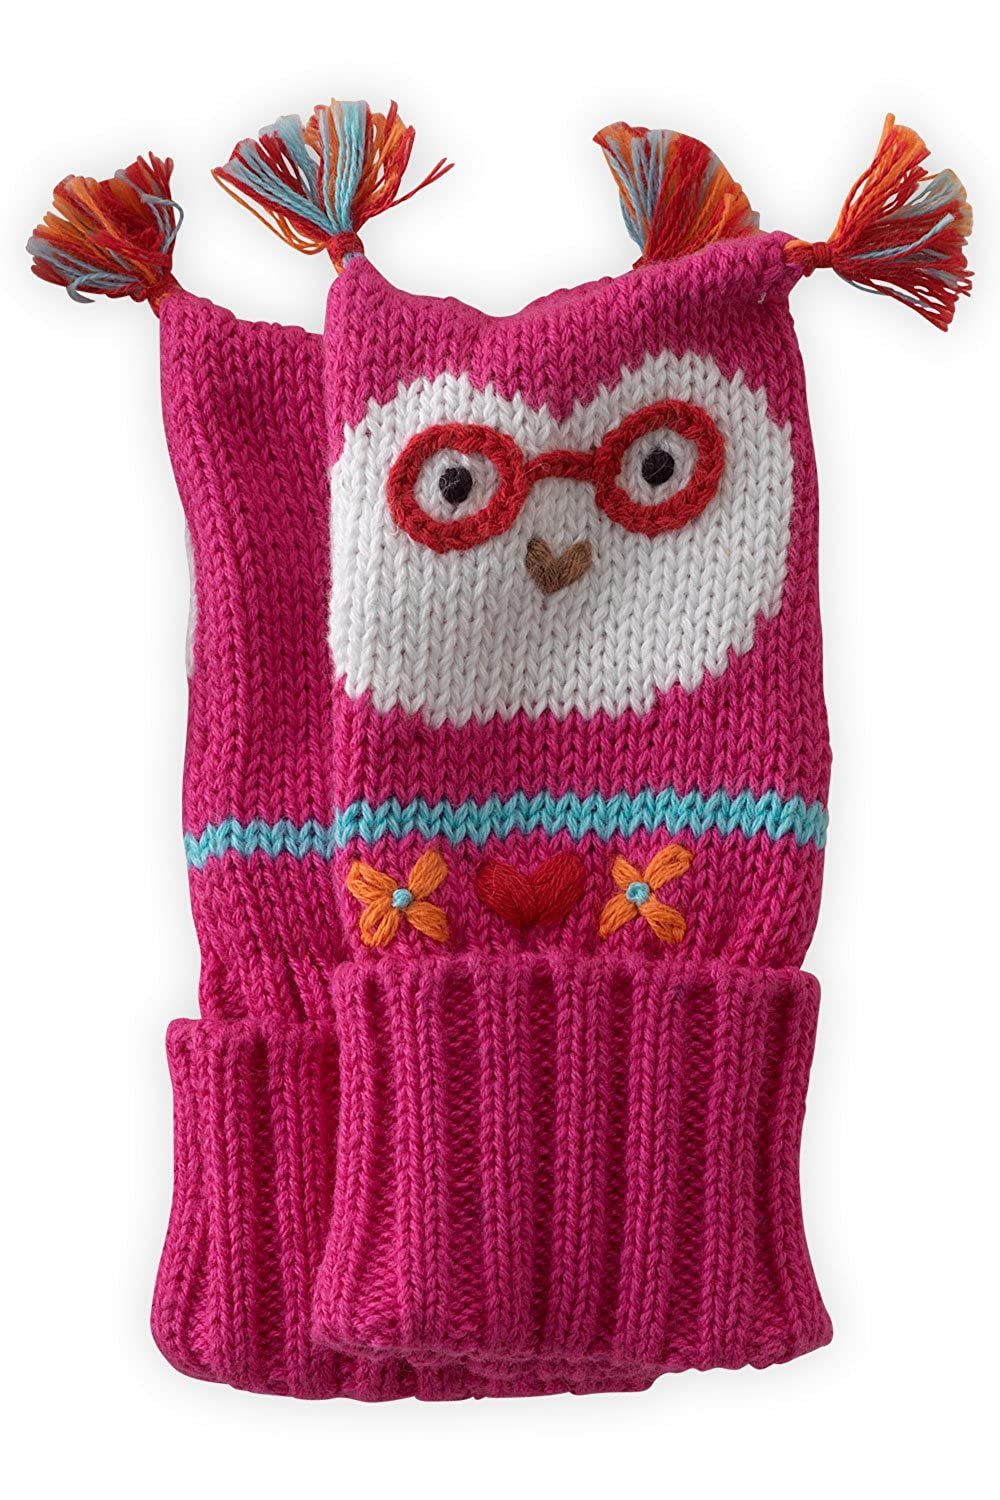 Joobles Organic Baby Mittens - Jody the Owl (0-6 Months) 03912-0013182